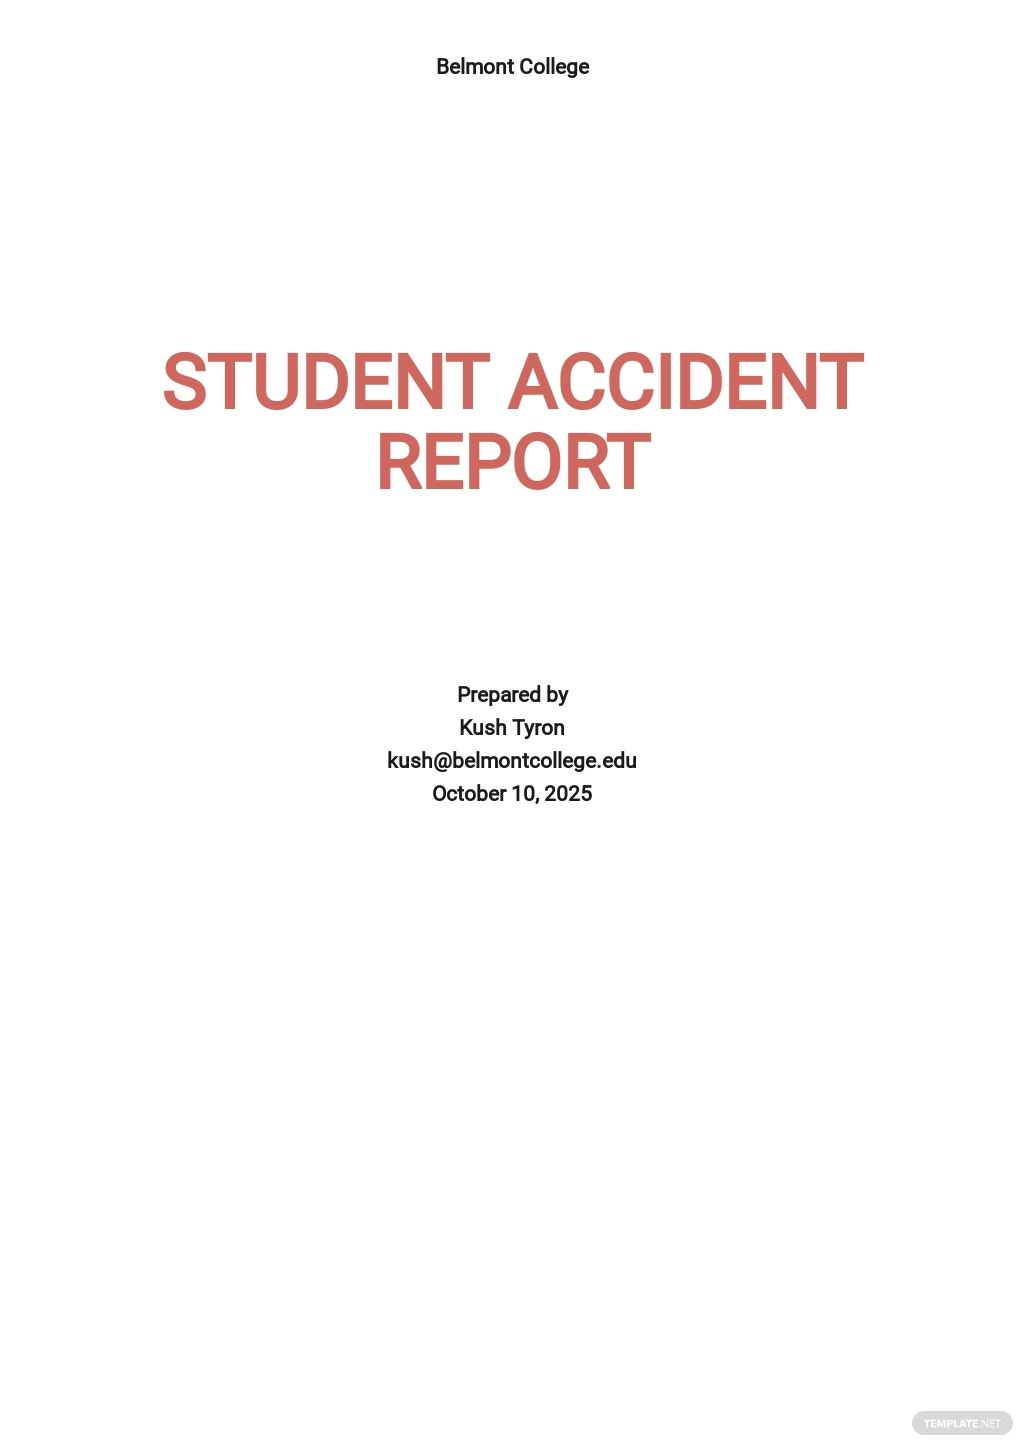 Free Student Accident Report Template.jpe